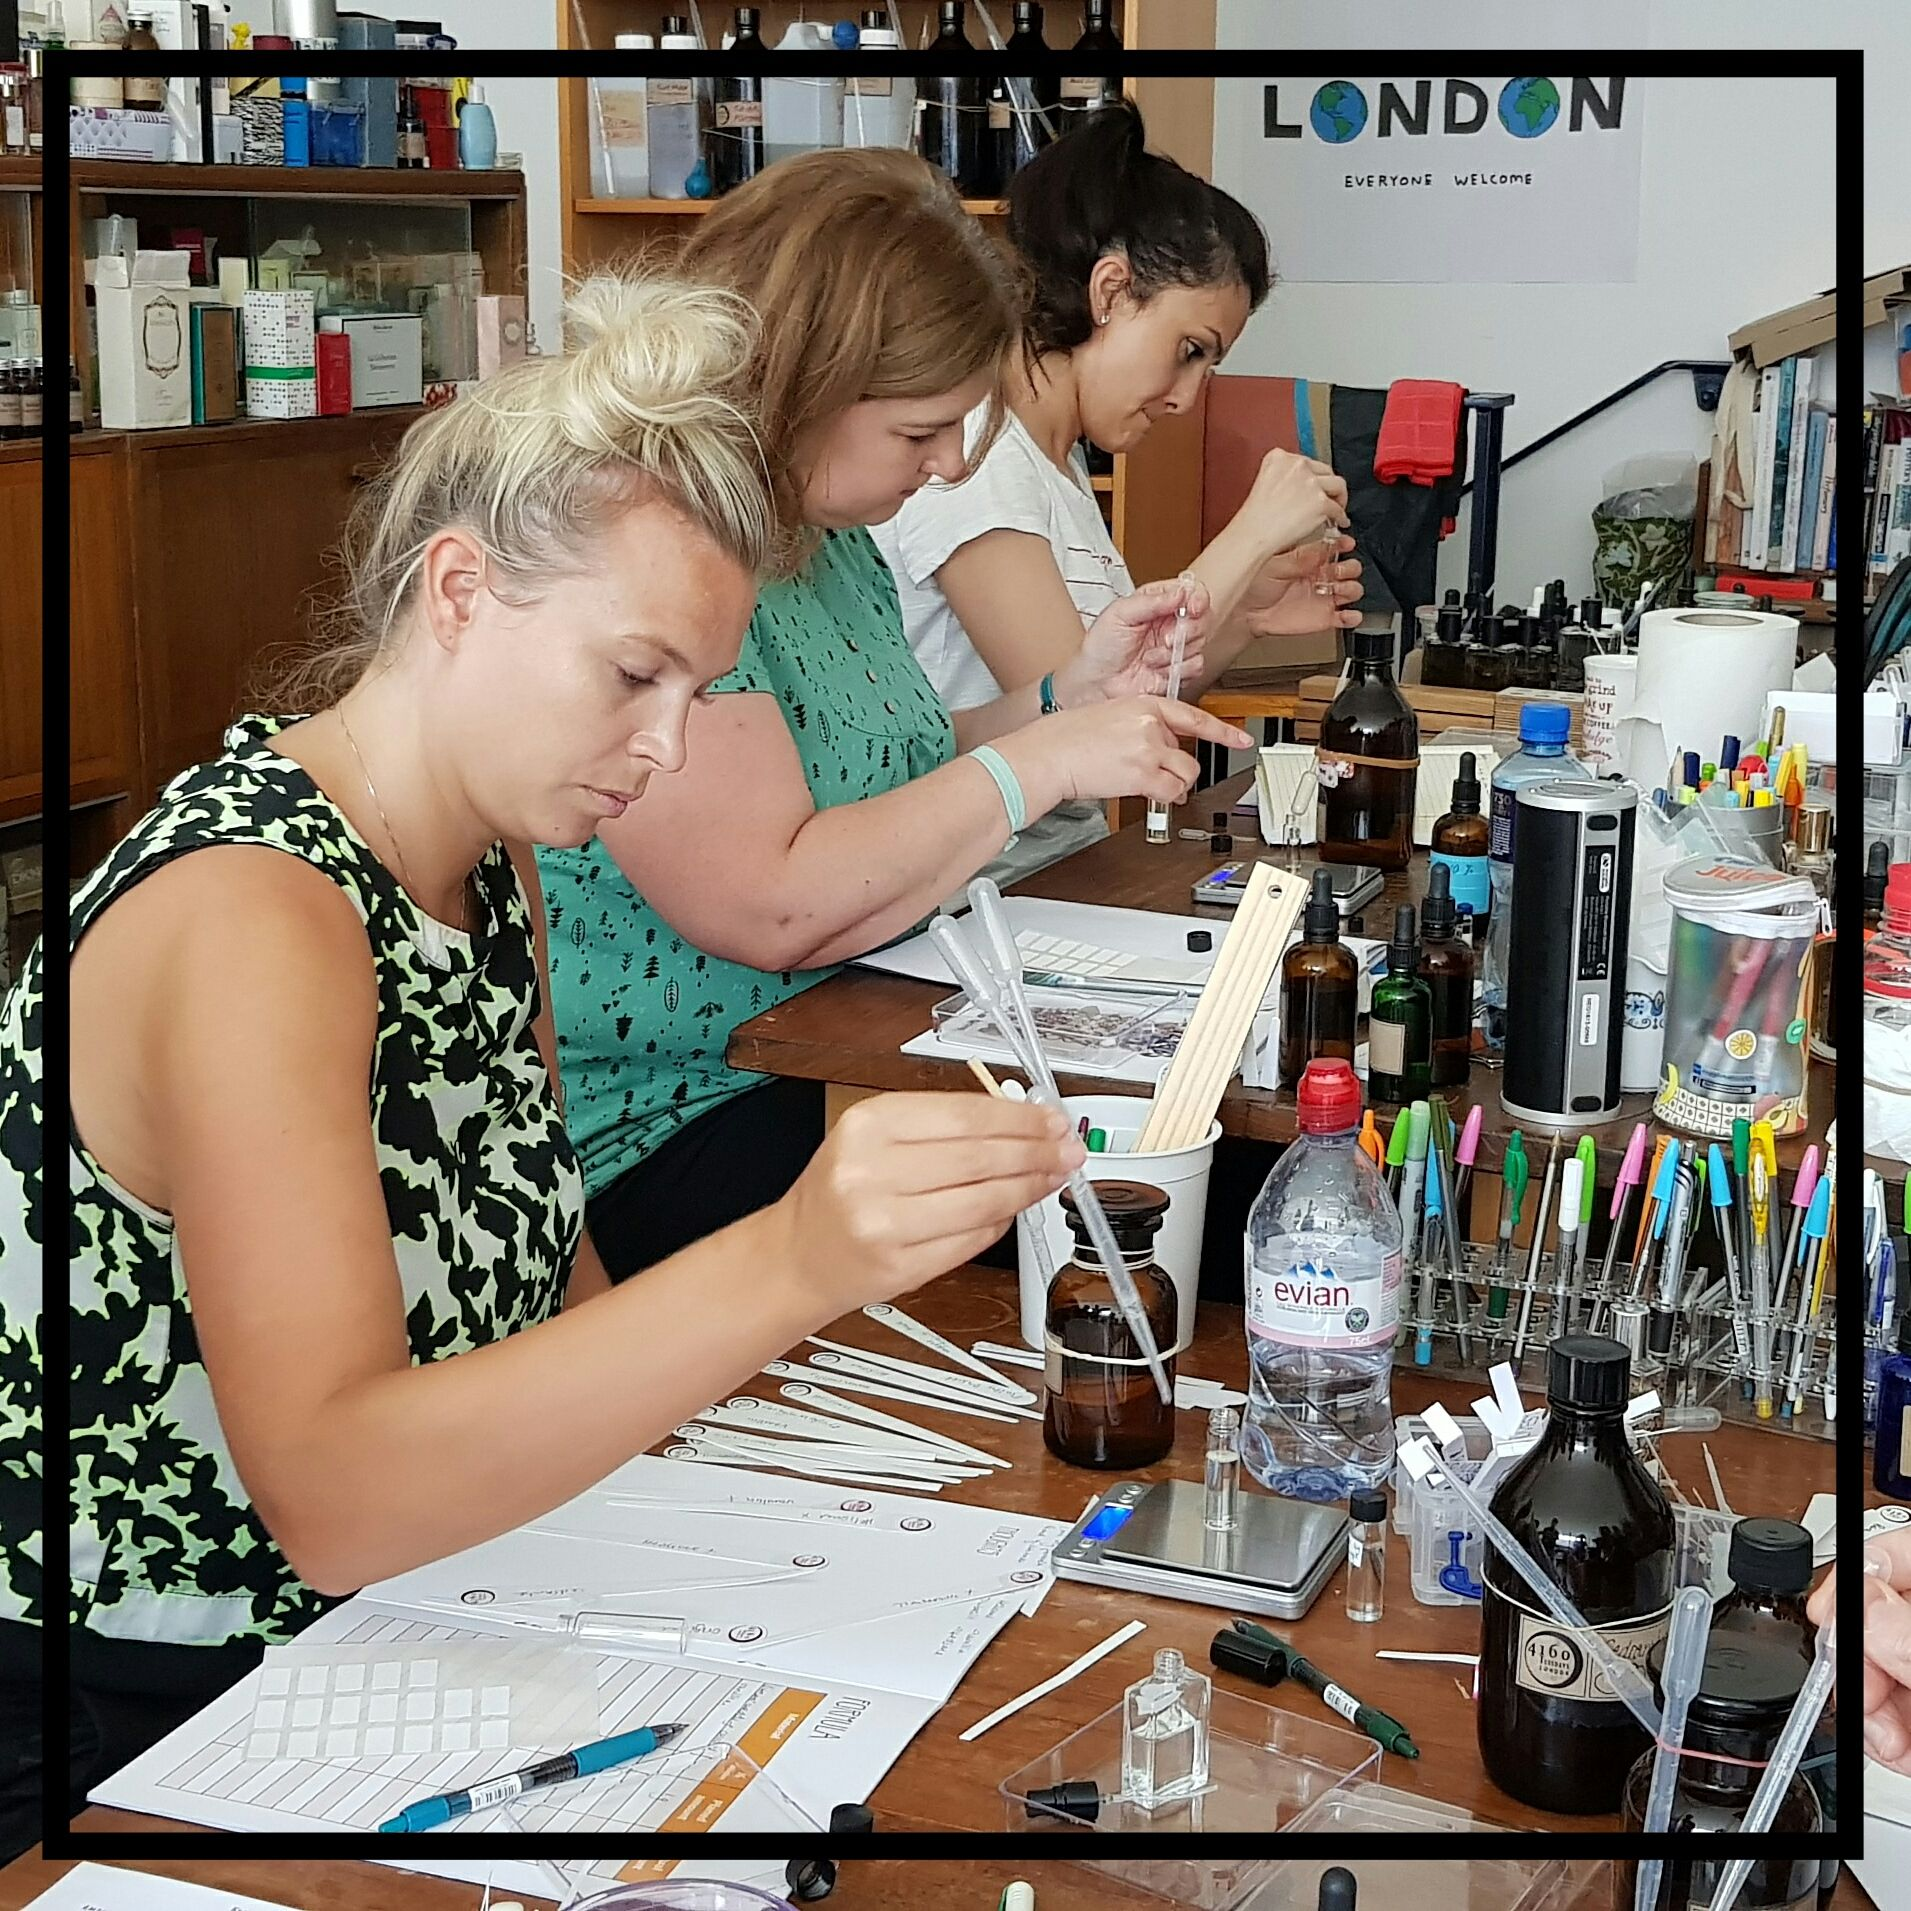 Four pictures of a perfume workshop